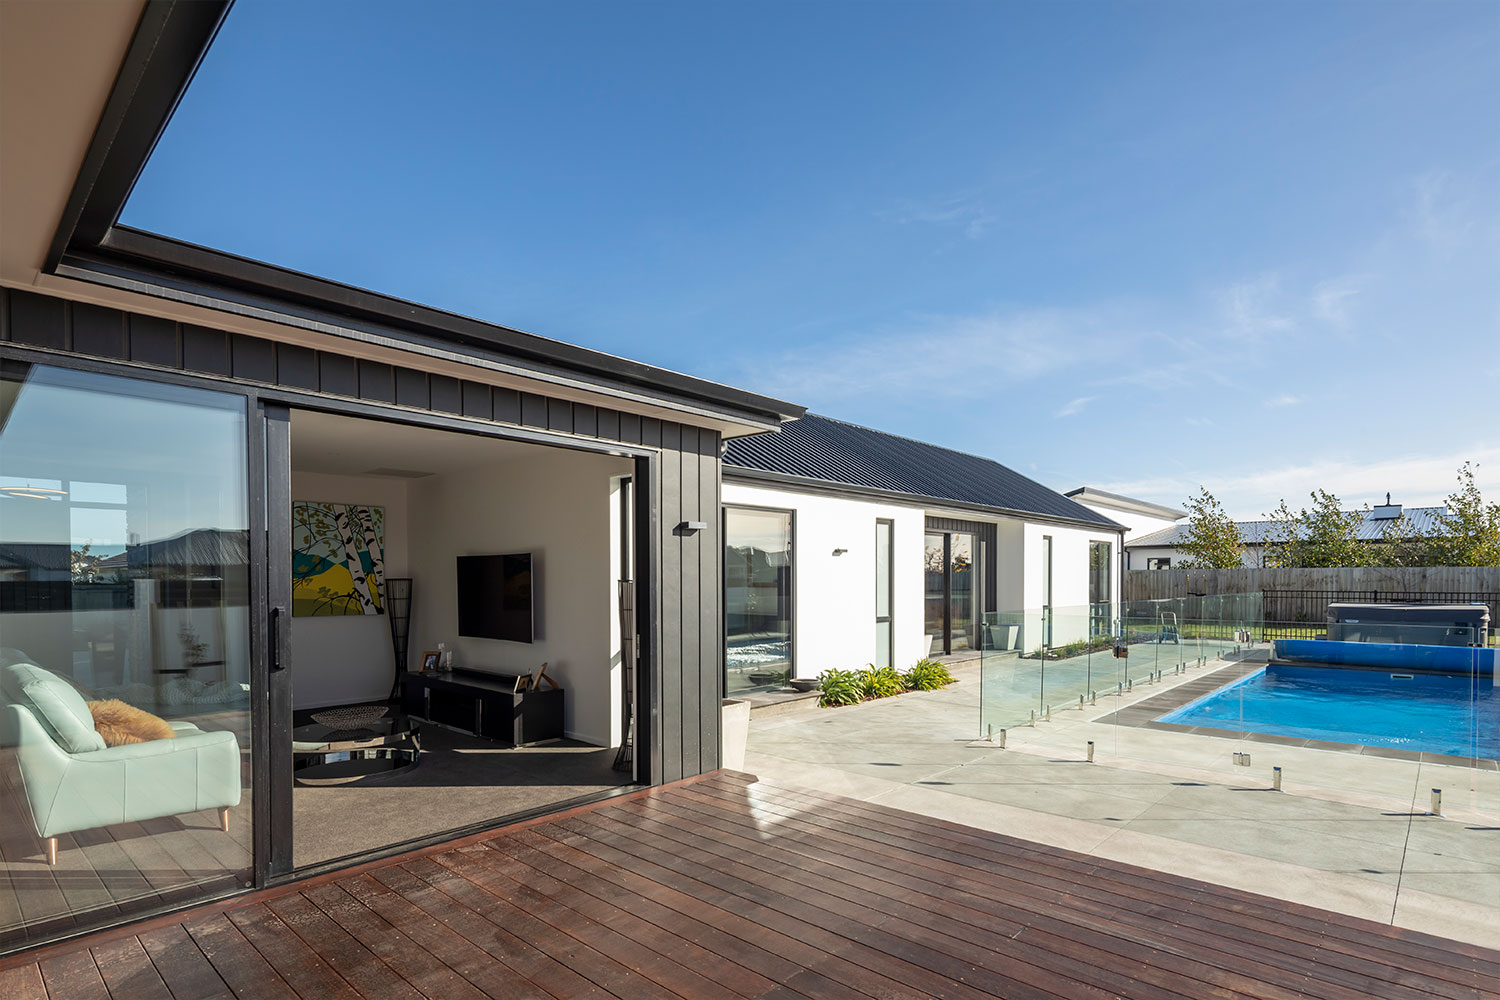 https://www.benchmarkhomes.co.nz/wp-content/uploads/2021/06/Projects-May-21500-x-1000-High-Res.jpg